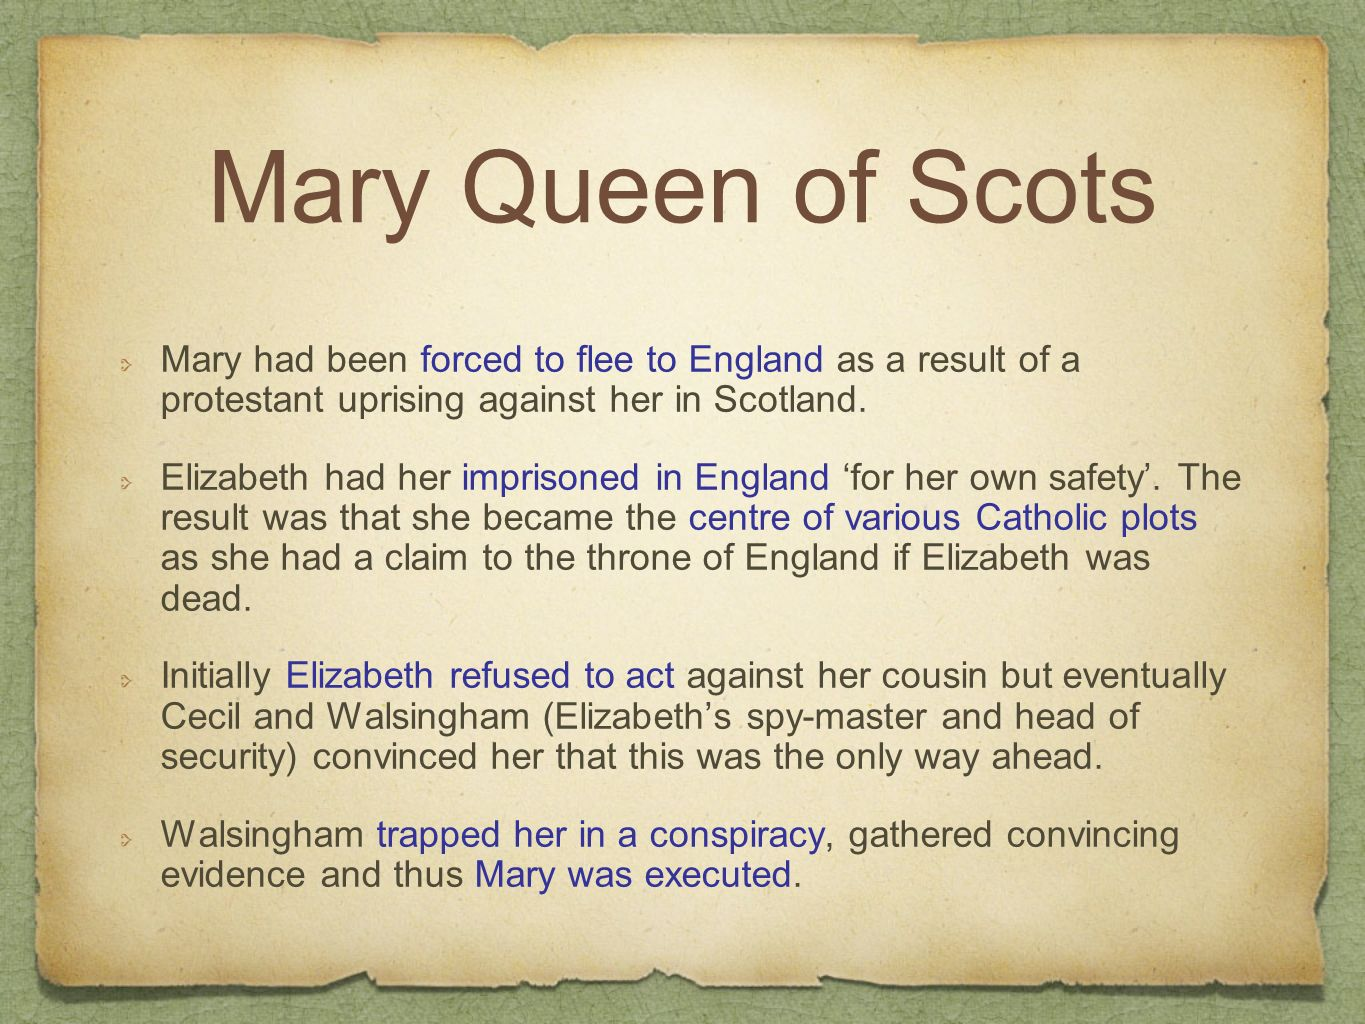 mary queen of scots vs. elizabeth i essay Mary, queen of scots was executed for many different reasons and in this essay i am going to explain some of the reasons as to why she was executed in 1587 mary queen of scots was a catholic, and her close relations to the very powerful french court strengthened their powers against england.